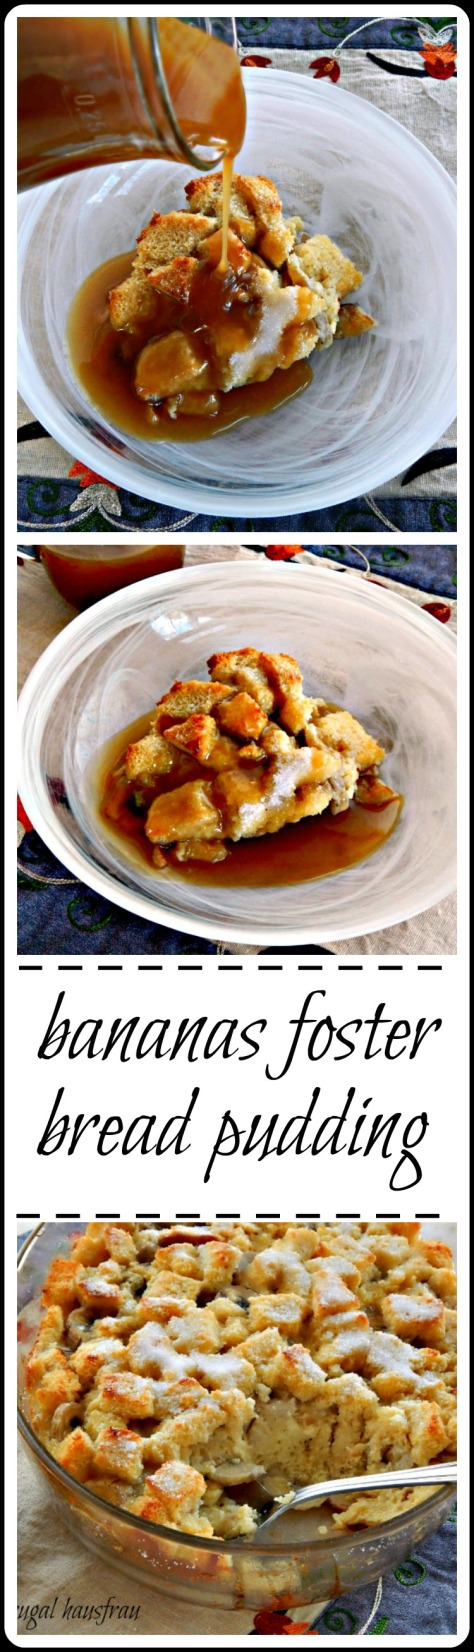 Bananas Foster Bread Pudding: Double that sauce and just try not to drink it, lol